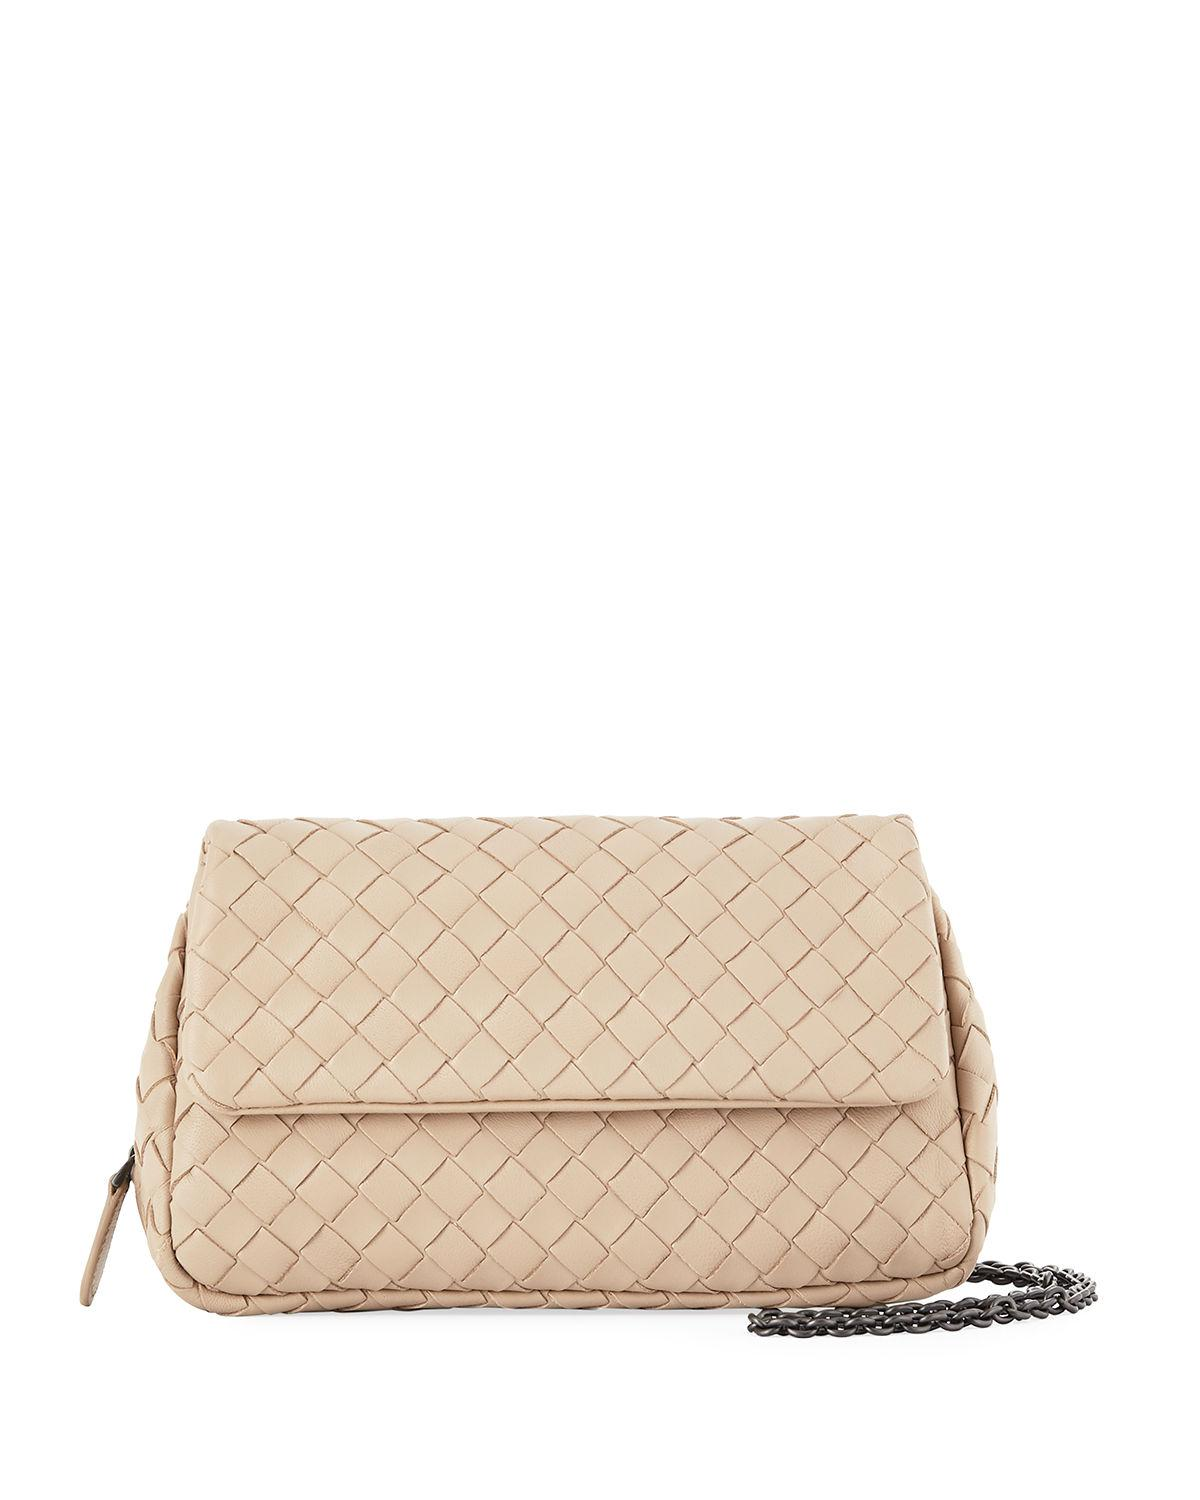 d6a7662577 Bottega Veneta. Women s Natural Intrecciato Small Chain Crossbody Bag